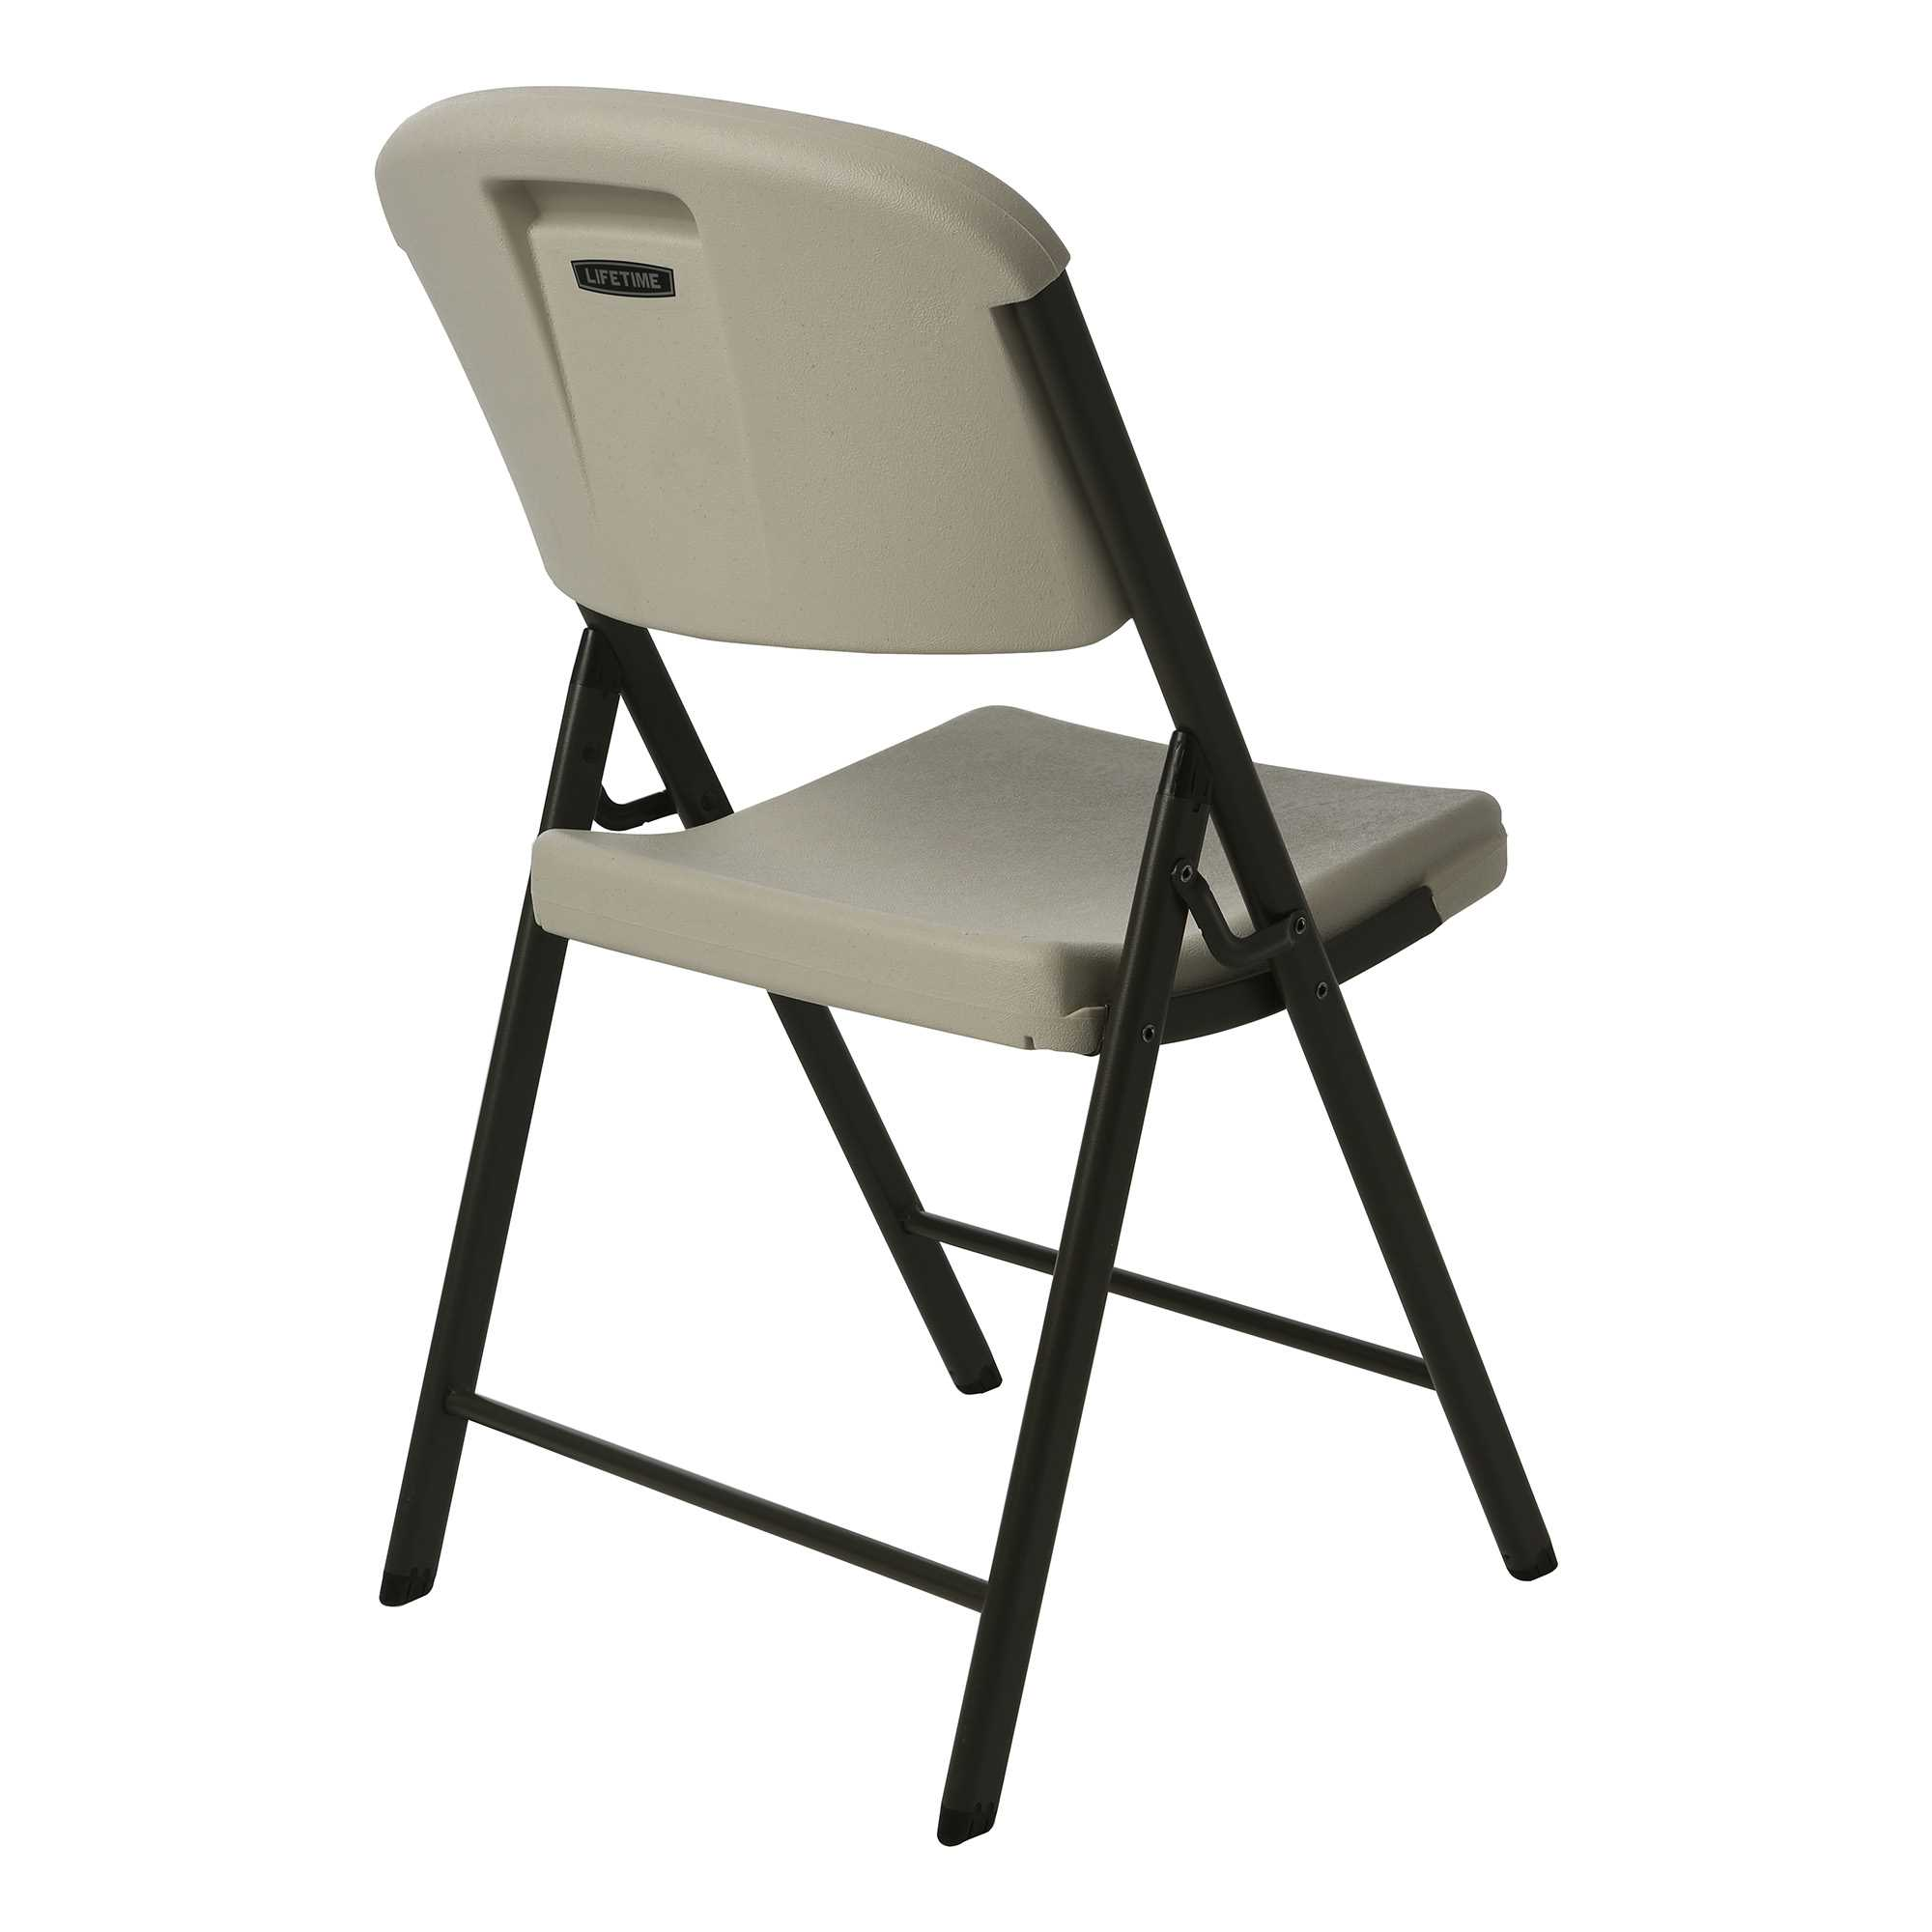 commercial folding chairs deck chair plans lifetime grade contoured select